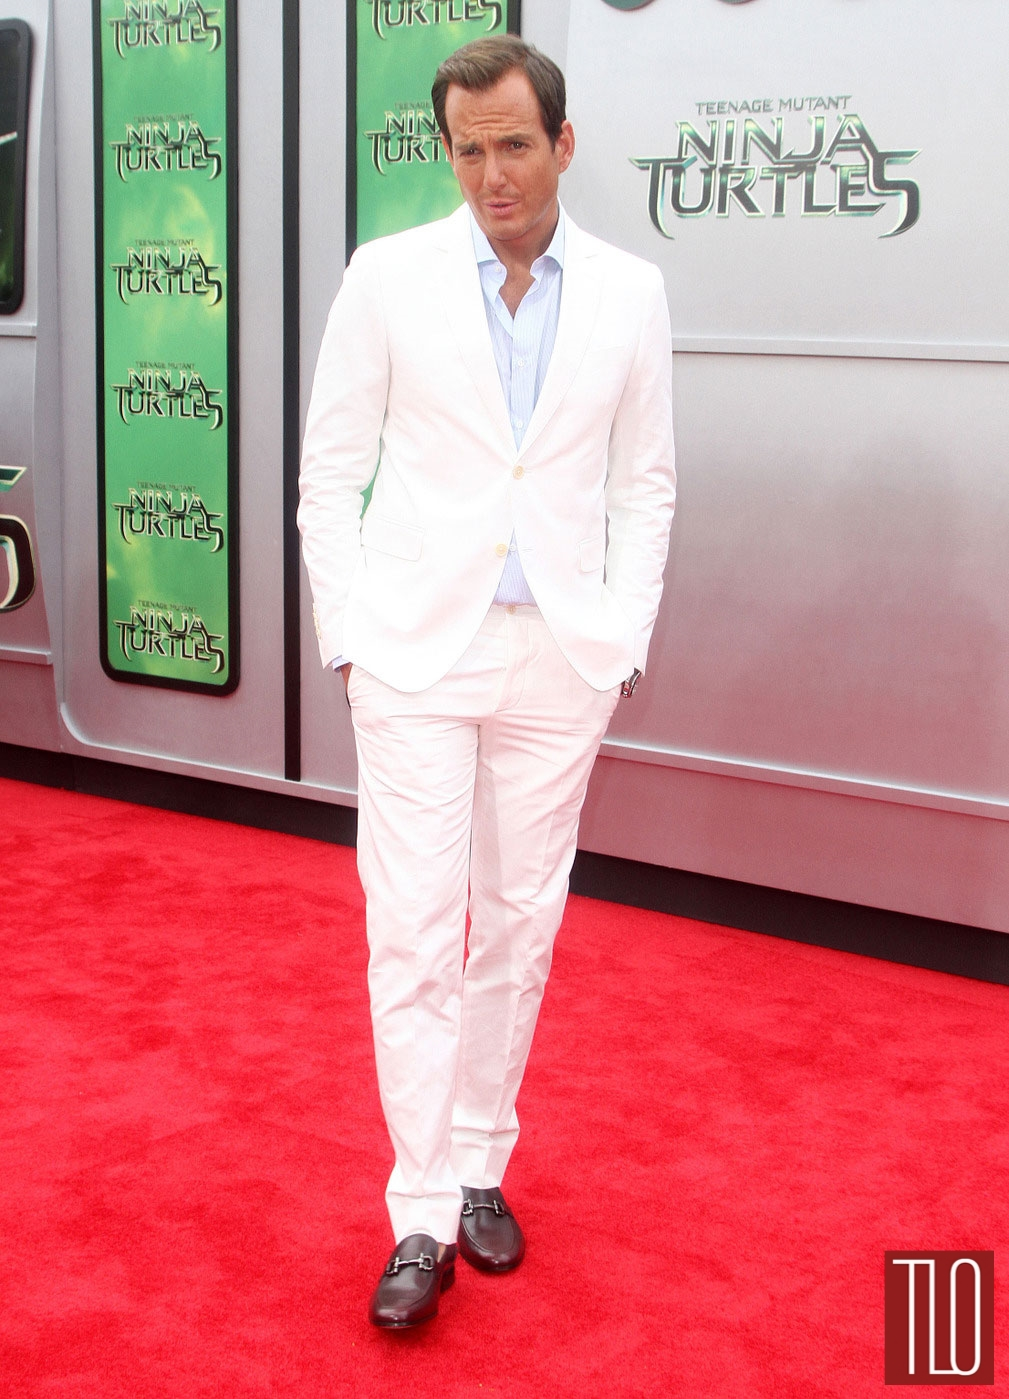 Will-Arnett-Salvatore-Ferragamo-Teenage-Mutant-Ninja-Turtles-Movie-Premiere-Red-Carpet-Tom-Lorenzo-Site-TLO (1)